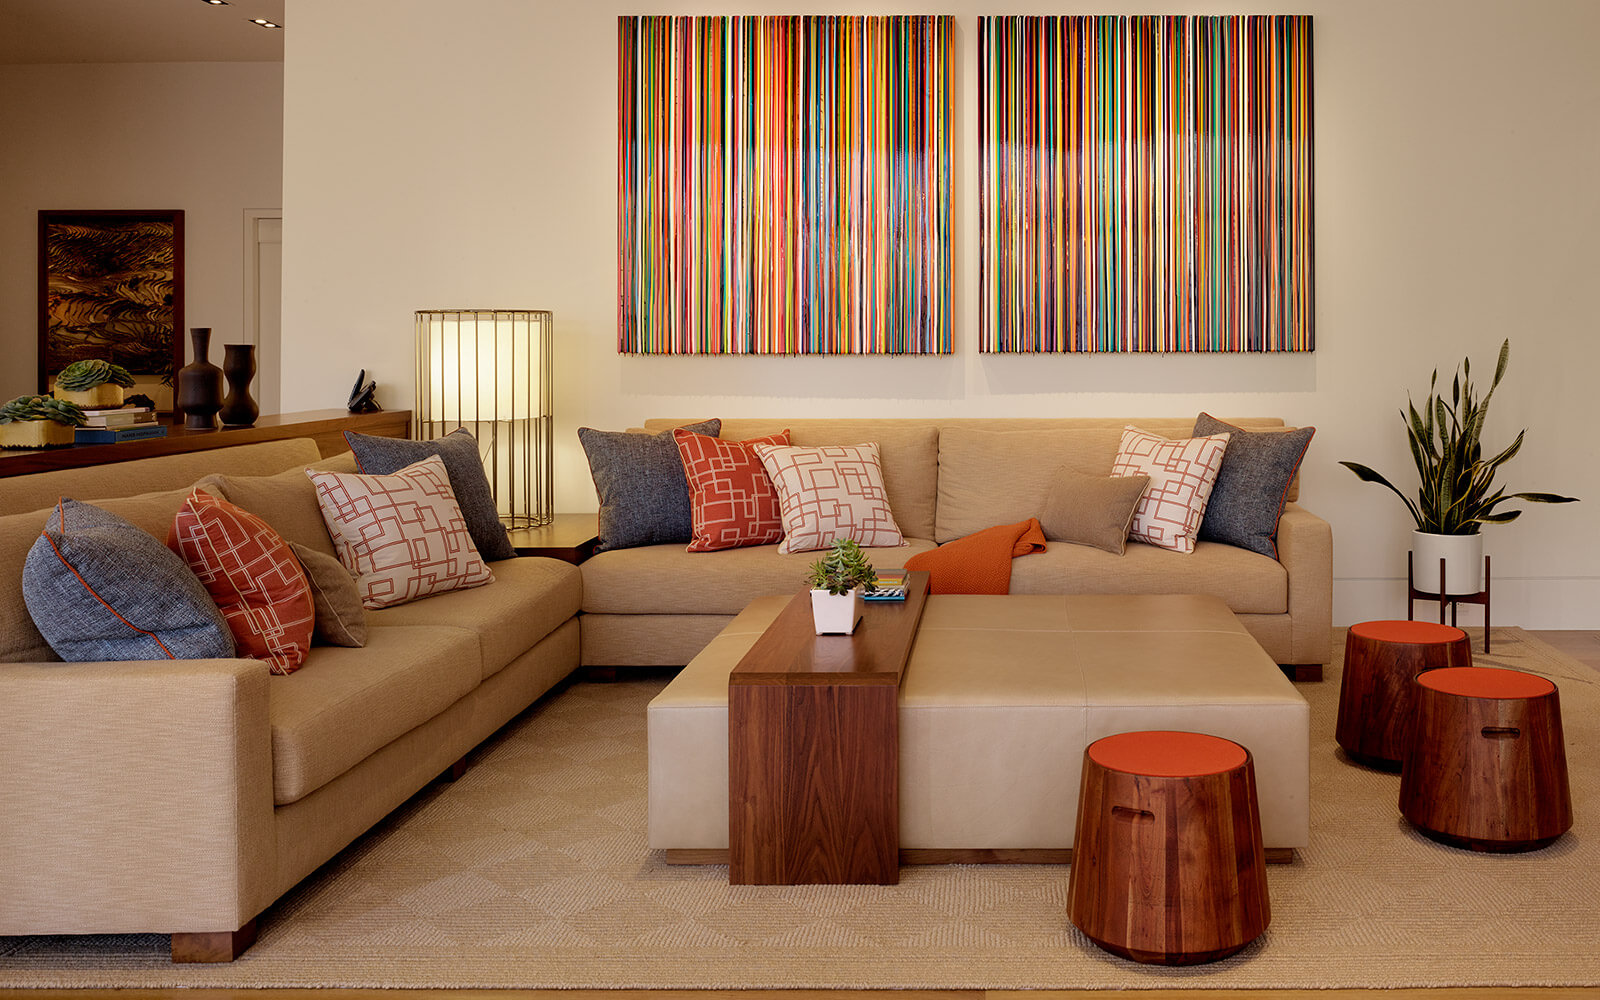 studio vara residential hillsborough living room art